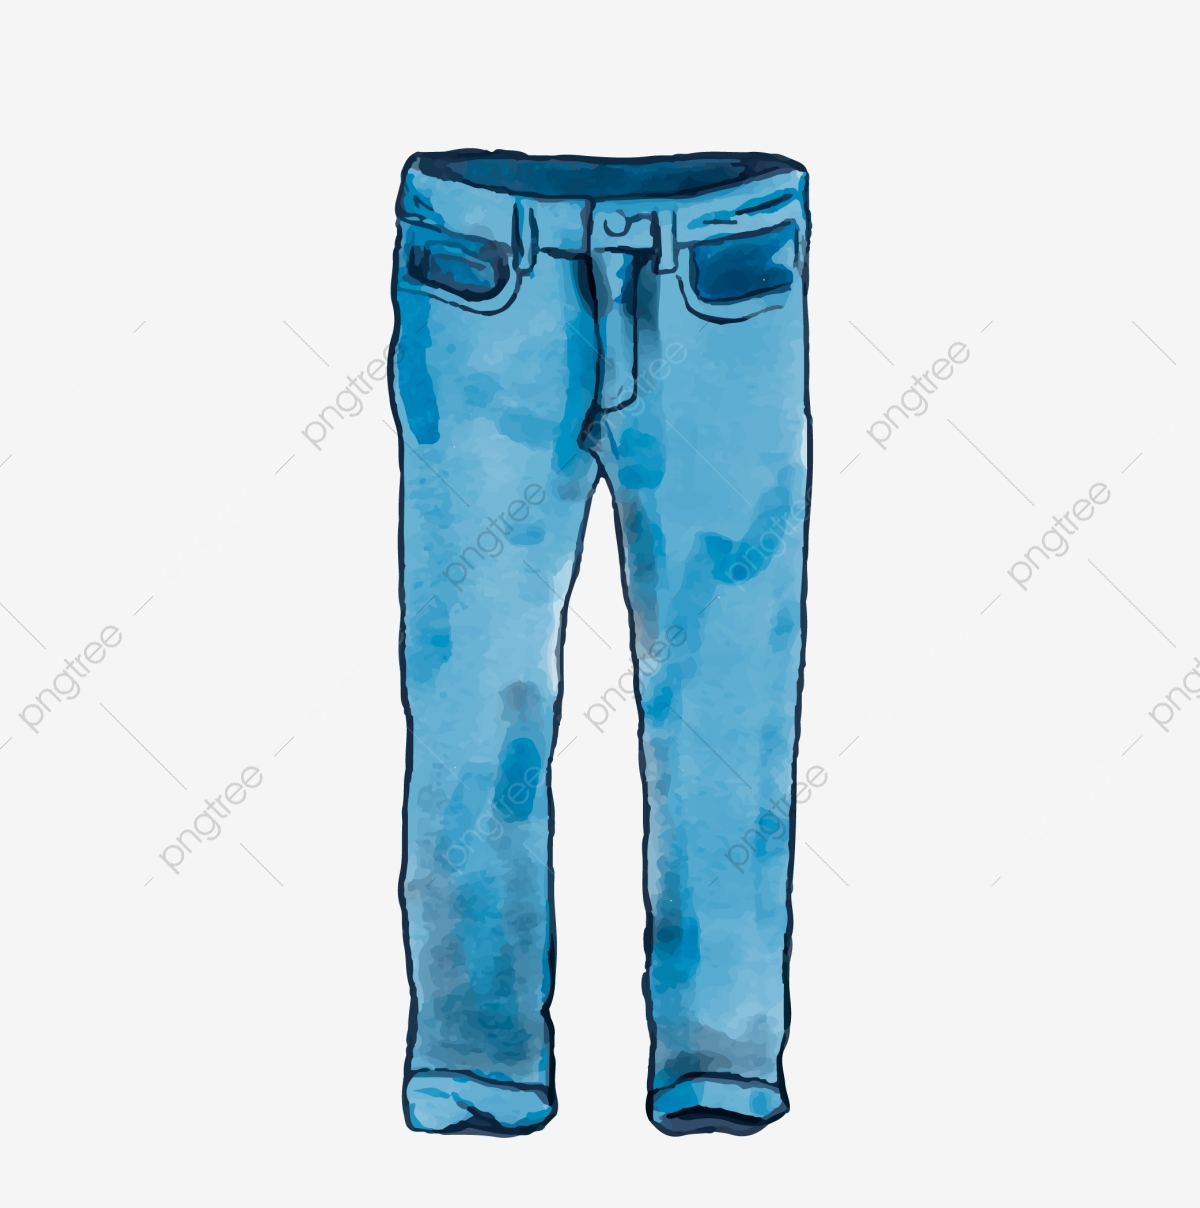 Mens Style Cartoon Cowboy Jeans Jeans Clothing Blue Blue Cowboy Png And Vector With Transparent Background For Free Download